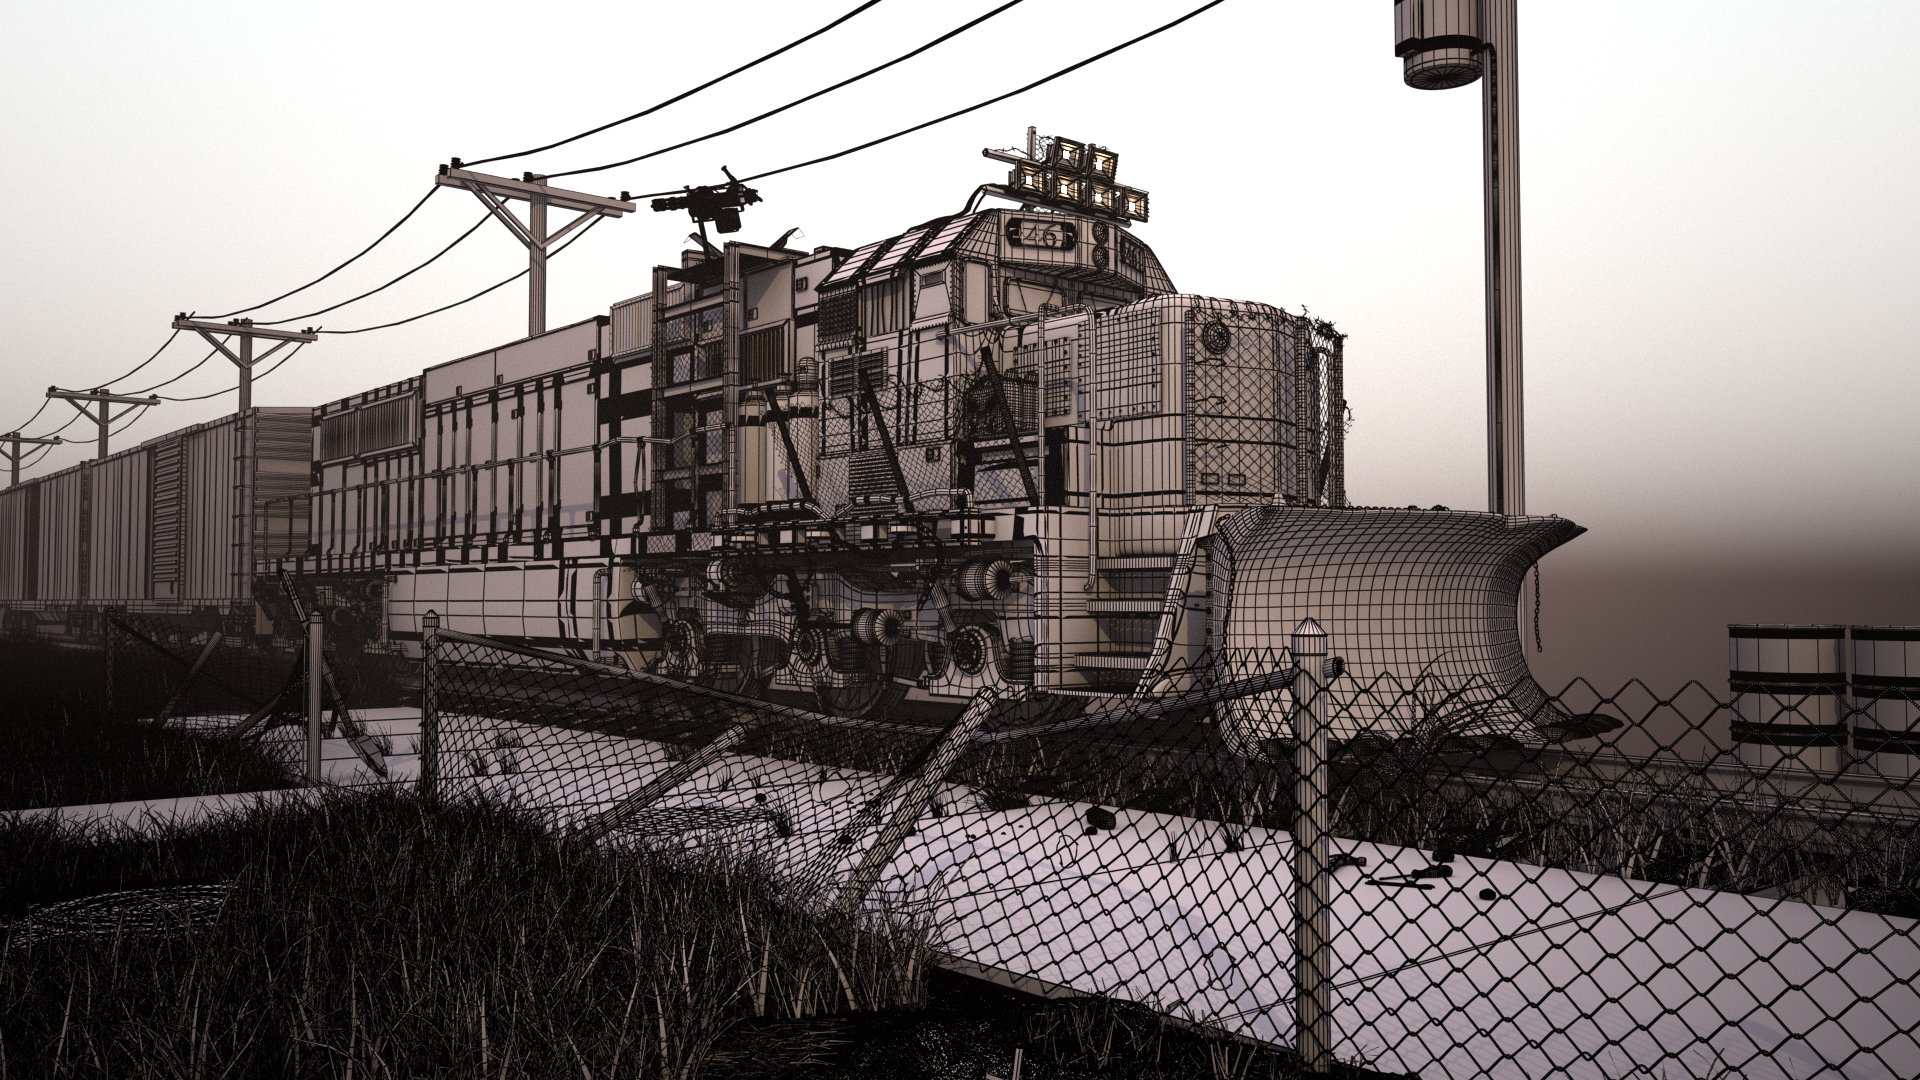 Spencer fitch freighttrainwireframe